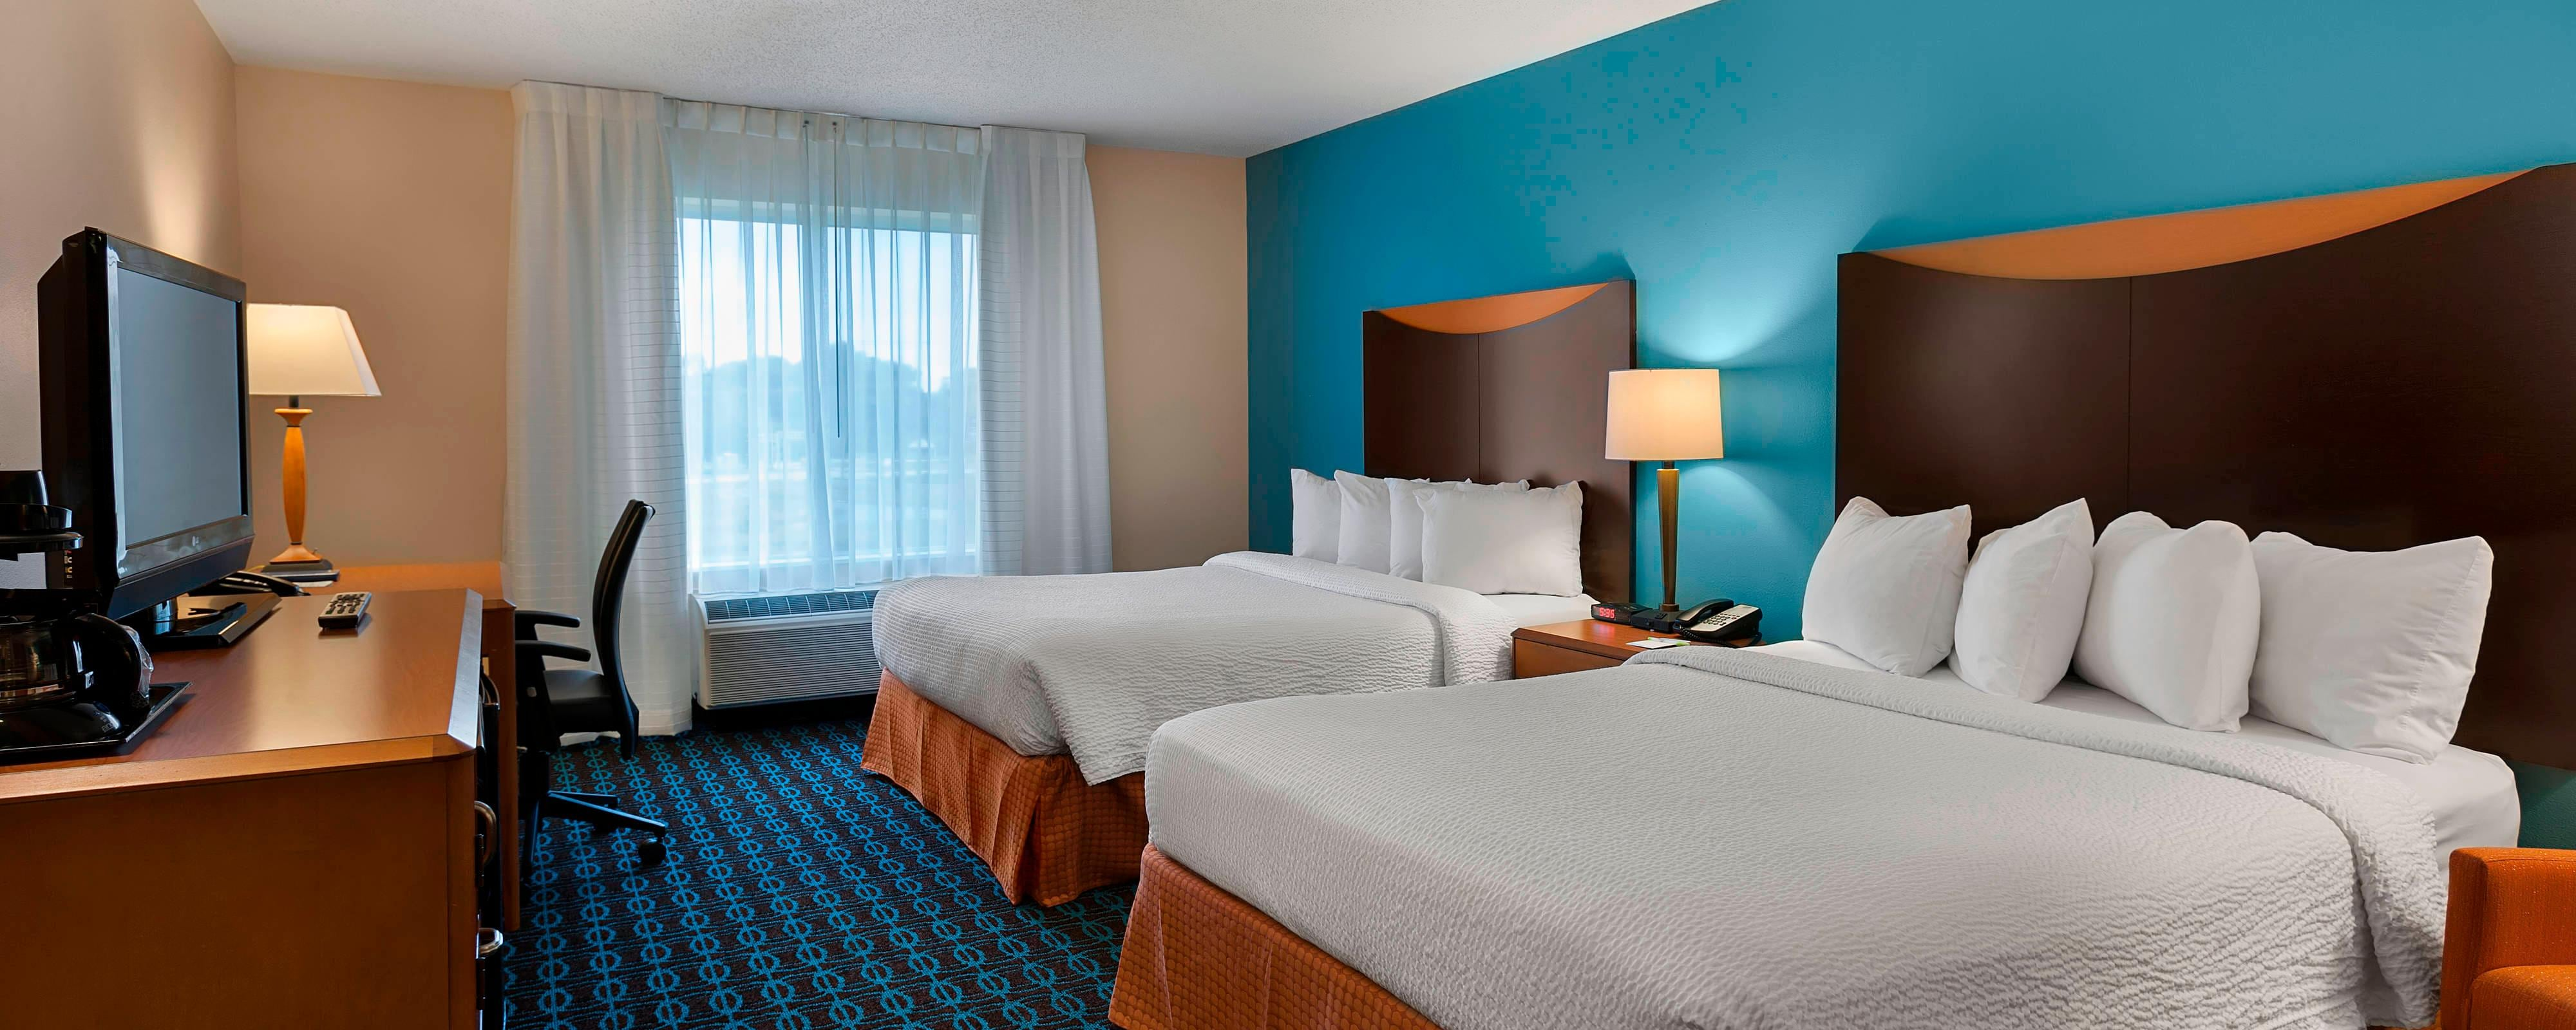 Aaa Promo Code Nc >> Hotel Suites in Elizabeth City, NC | Fairfield Inn & Suites